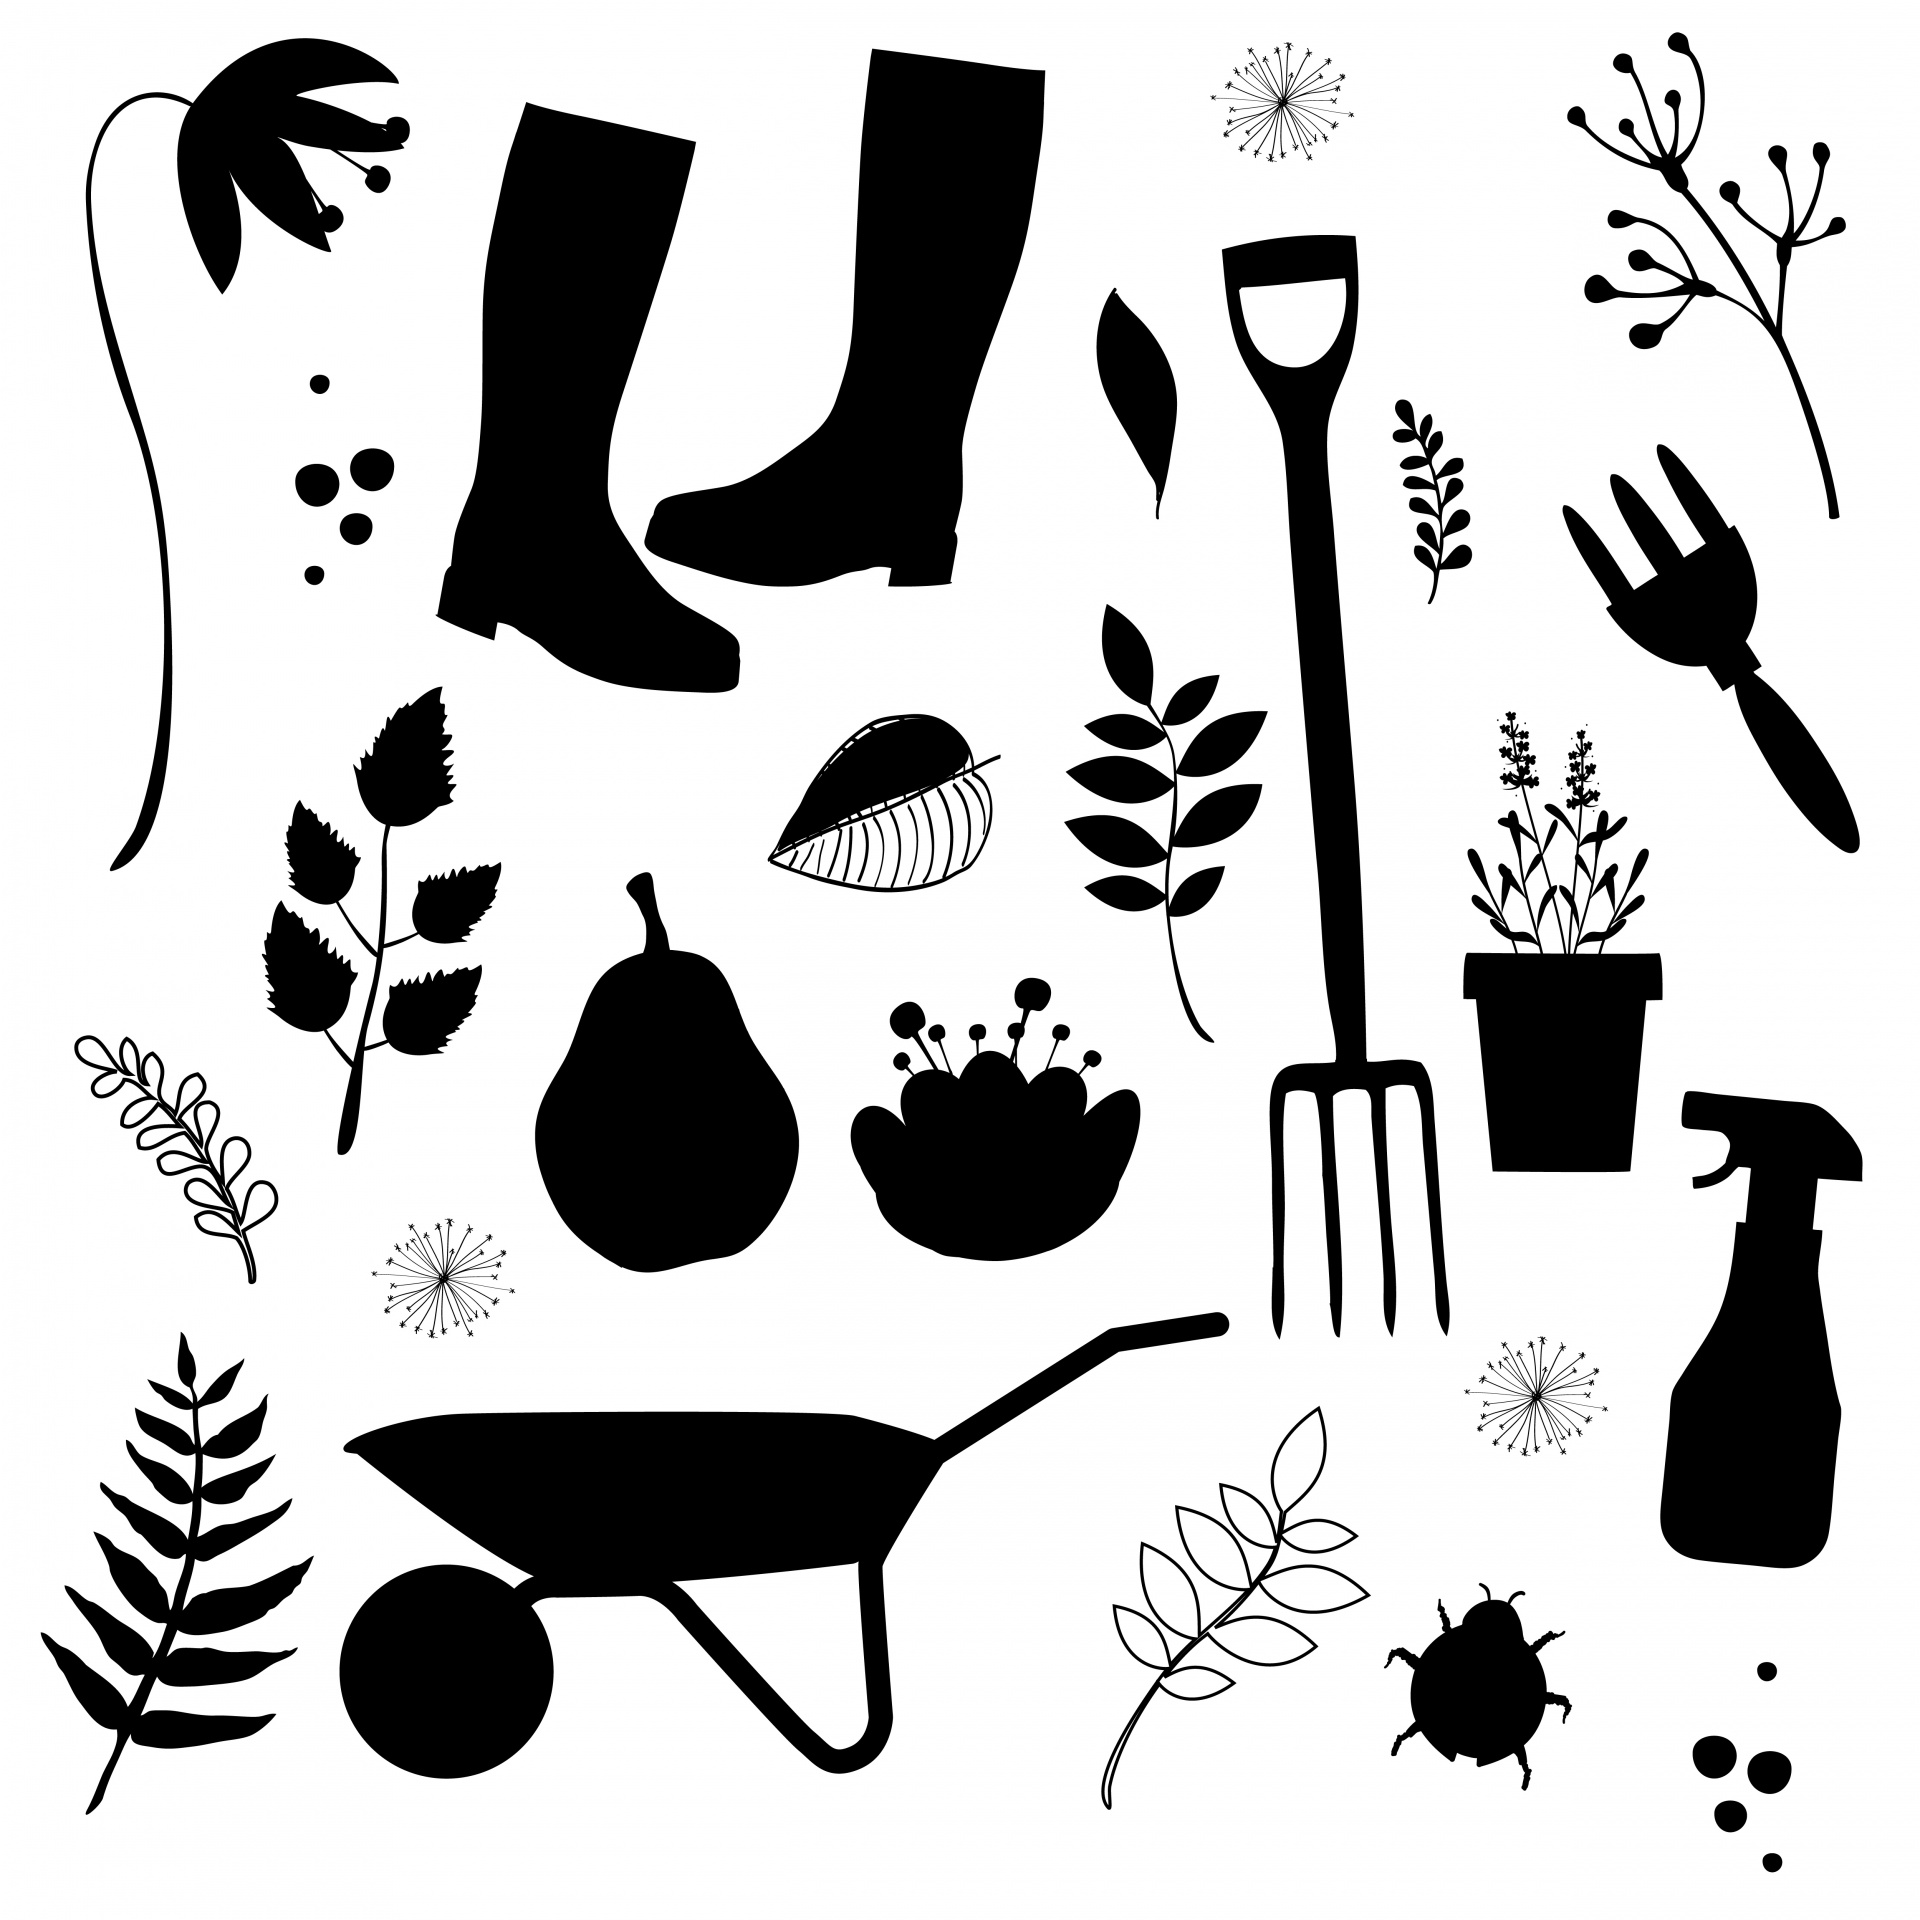 Gardening Tools Silhouette Clipart Free Stock Photo